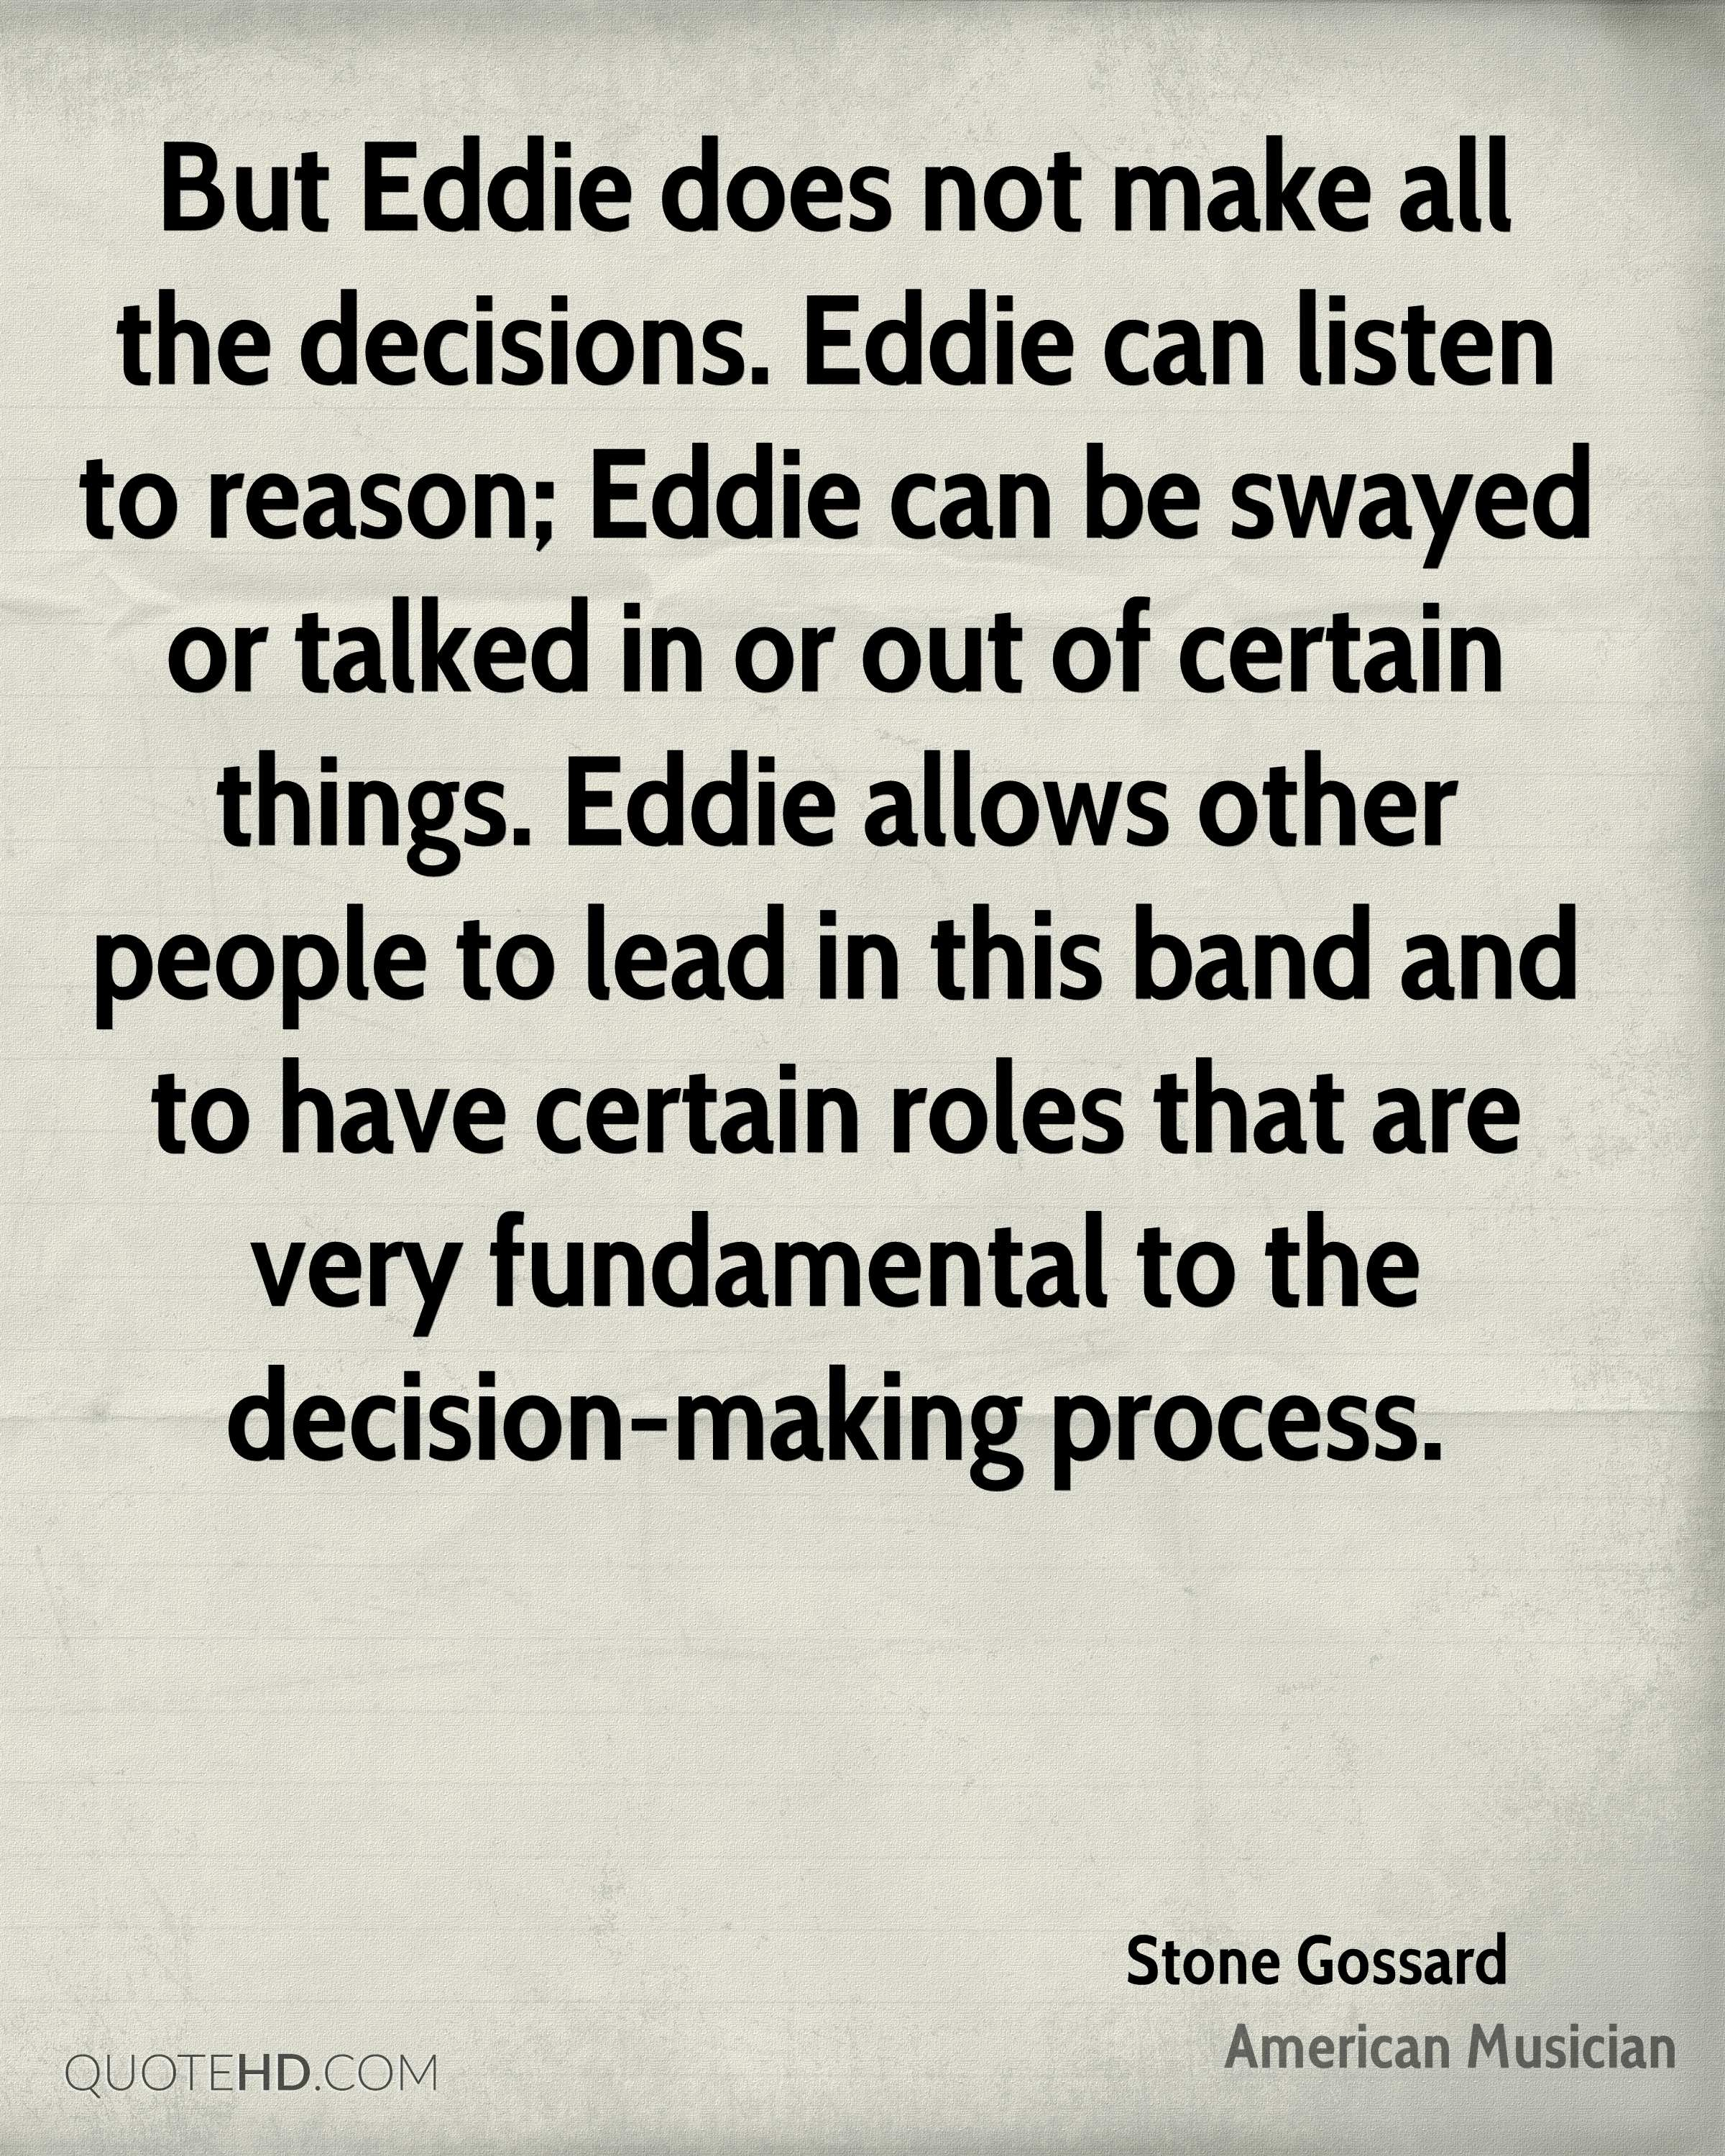 But Eddie does not make all the decisions. Eddie can listen to reason; Eddie can be swayed or talked in or out of certain things. Eddie allows other people to lead in this band and to have certain roles that are very fundamental to the decision-making process.